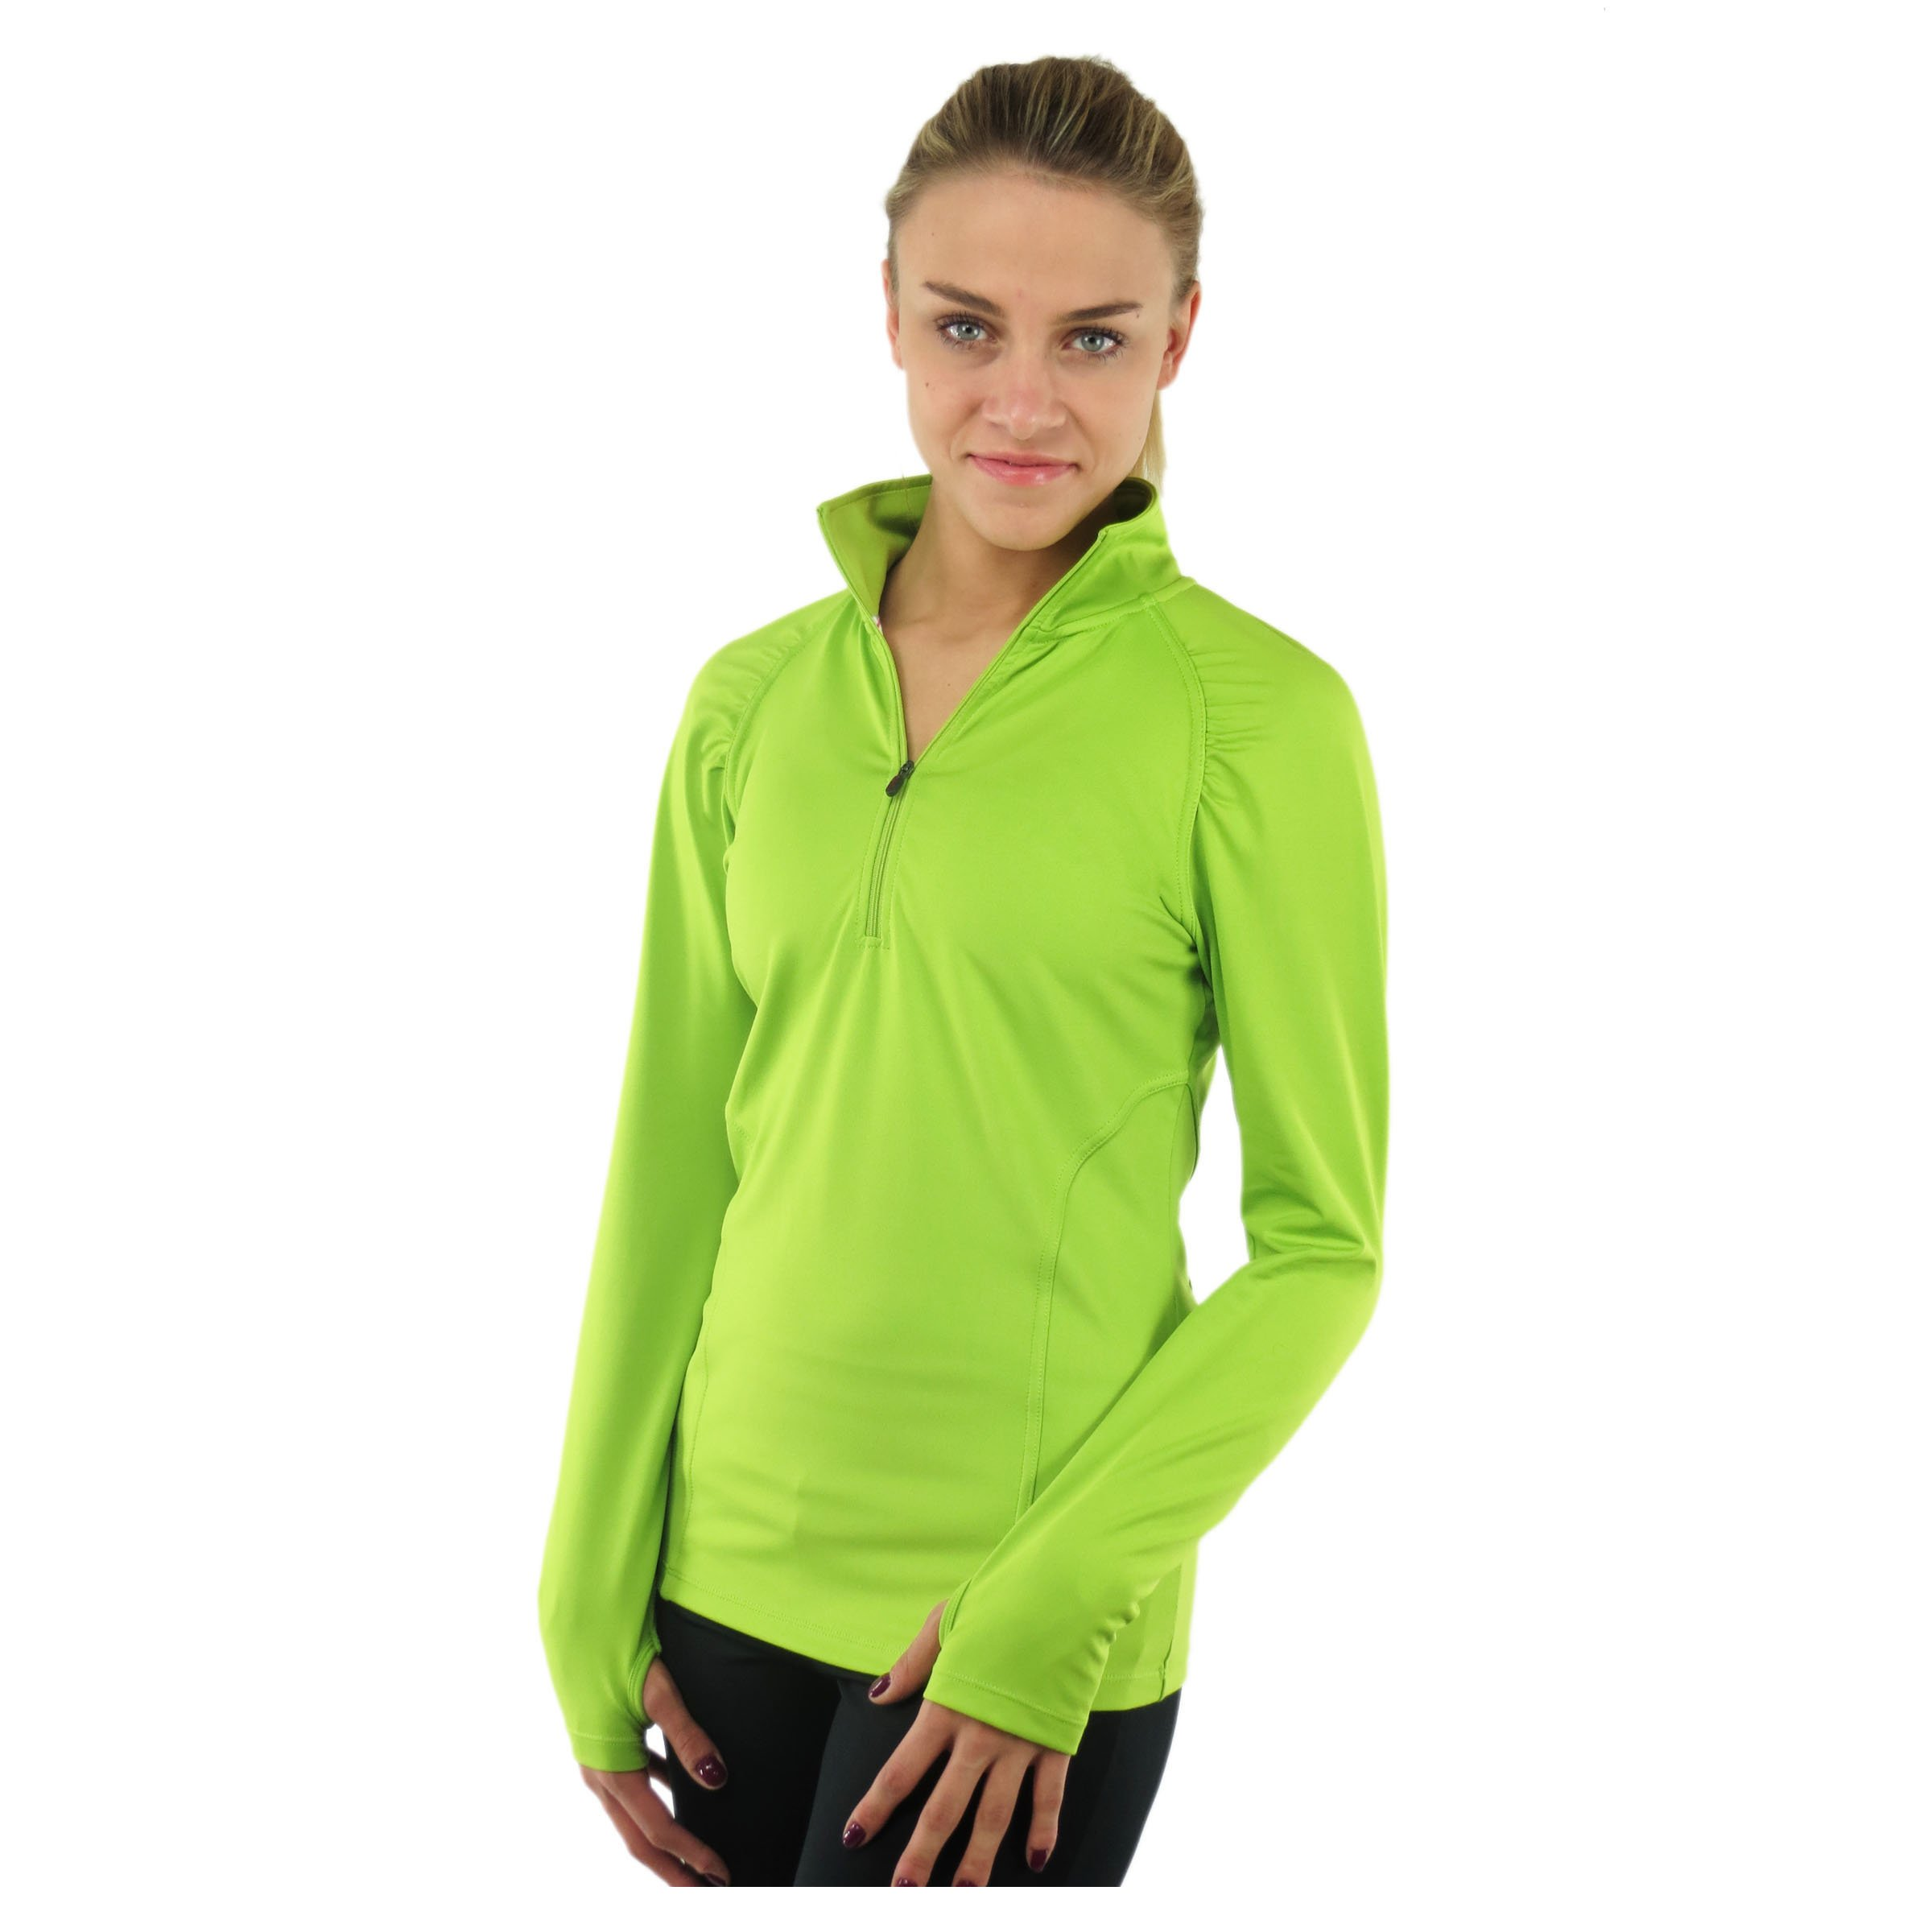 Alex + Abby Women's Essential Pullover Small Lime